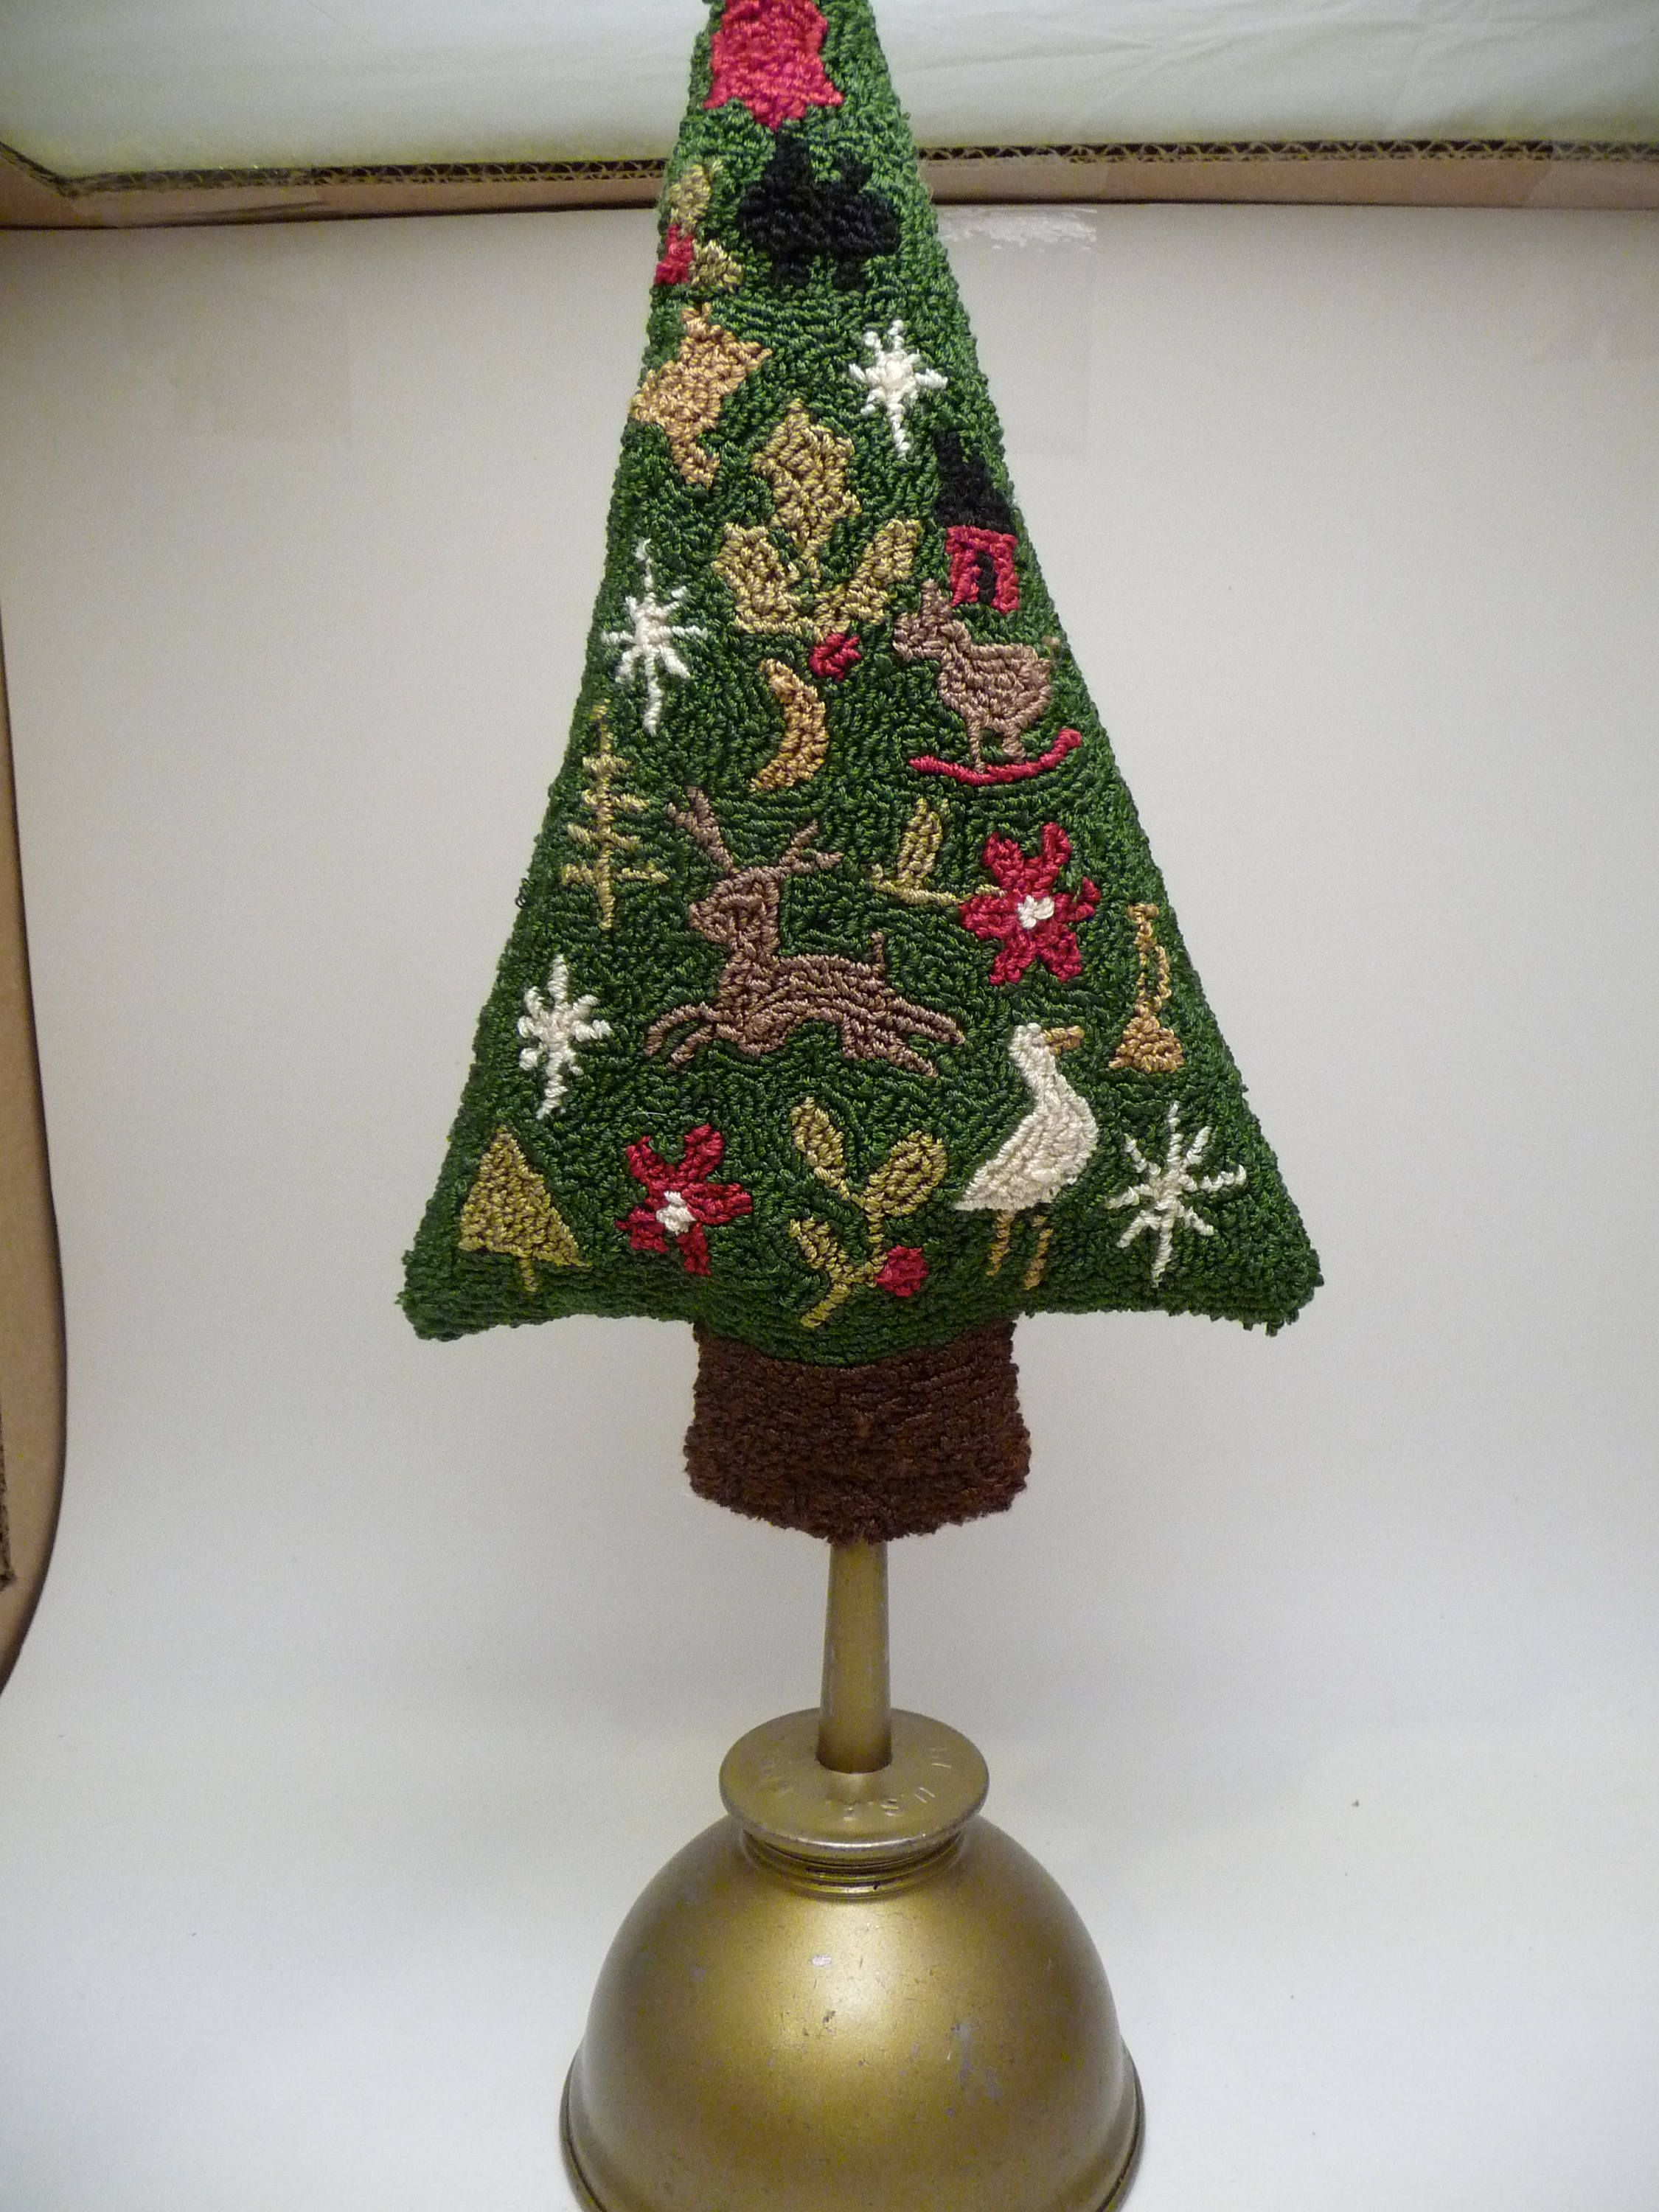 Mini Motif Punch Needle Christmas Tree Pattern By Auntieb56 On Etsy Christmas Tree Pattern Punch Needle Punch Needle Patterns